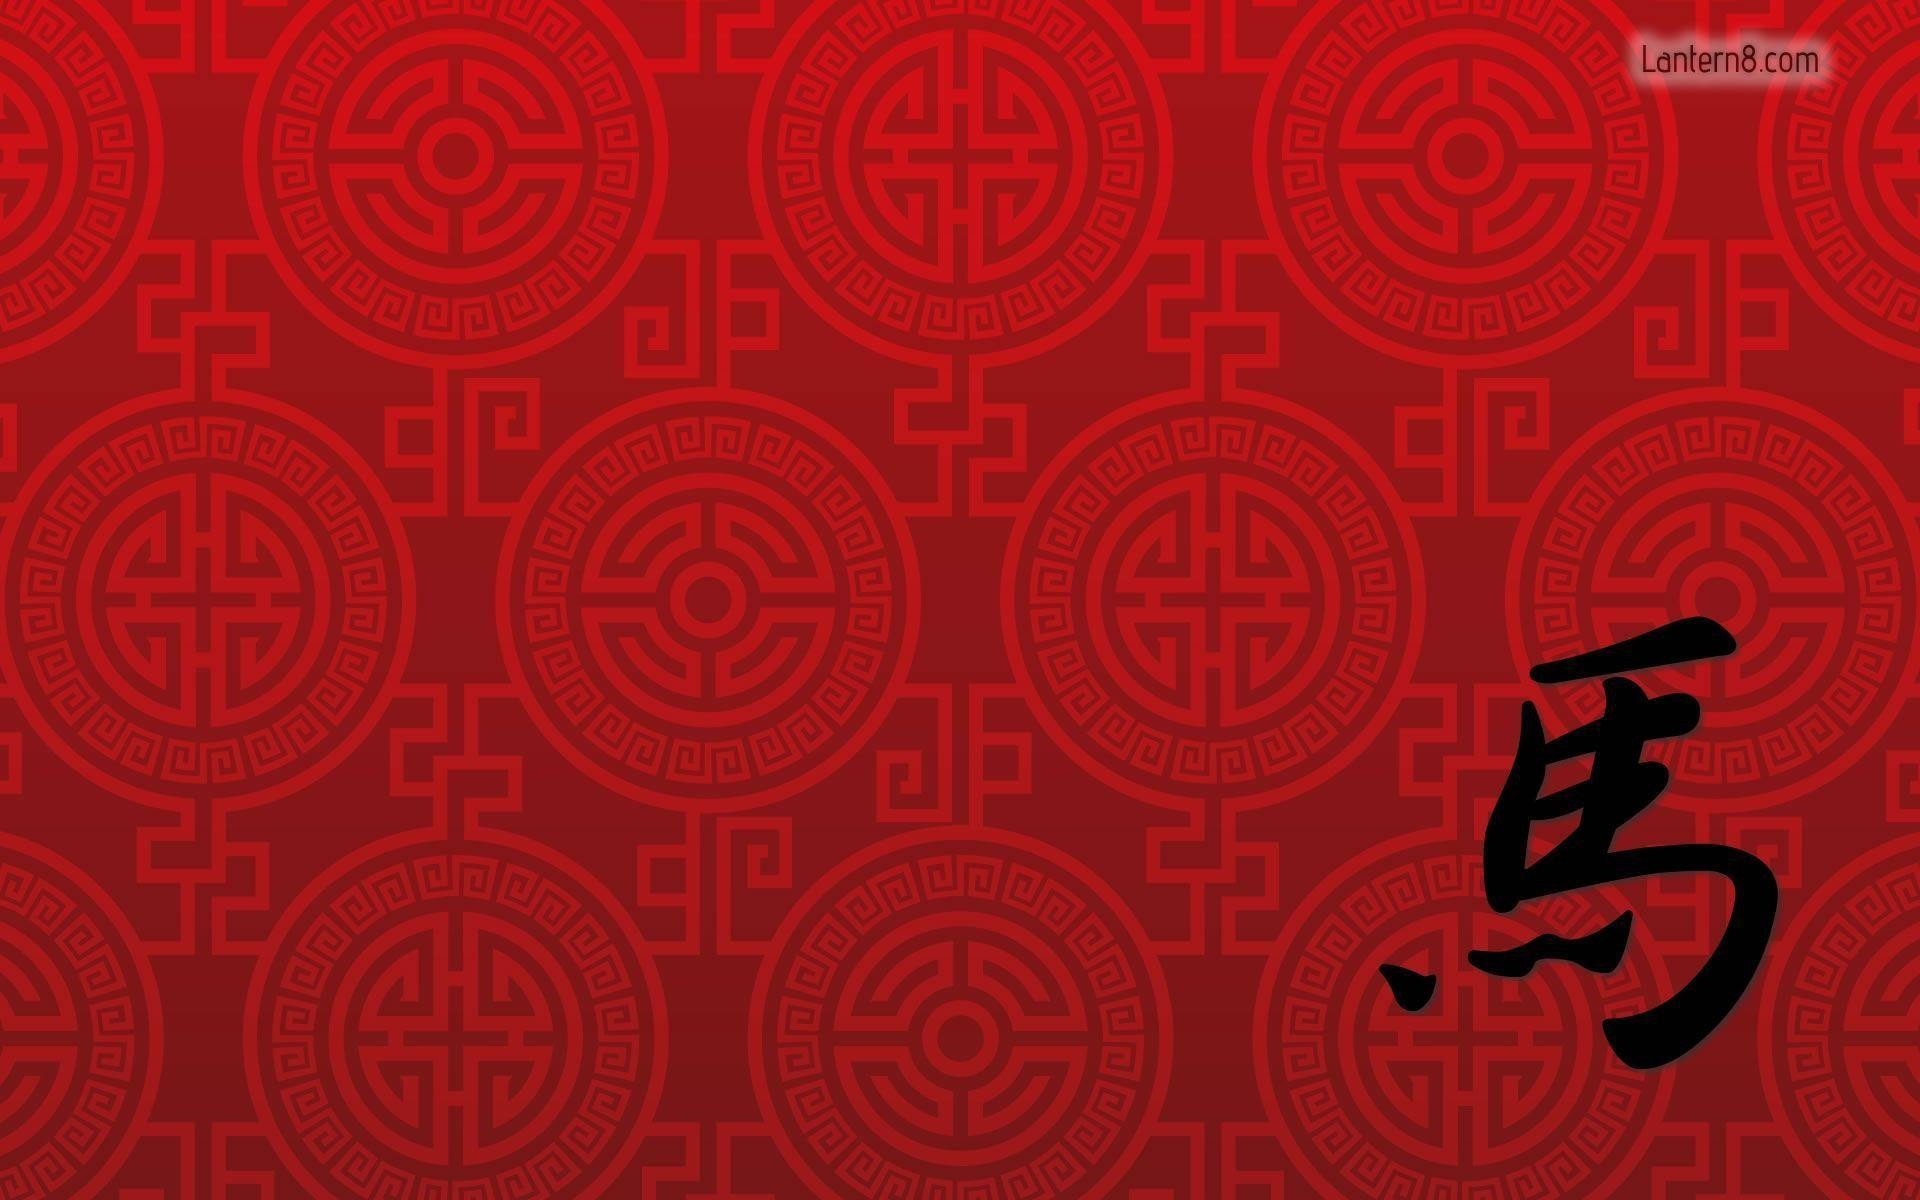 1920x1200 Chinese symbol wallpaper - 88293